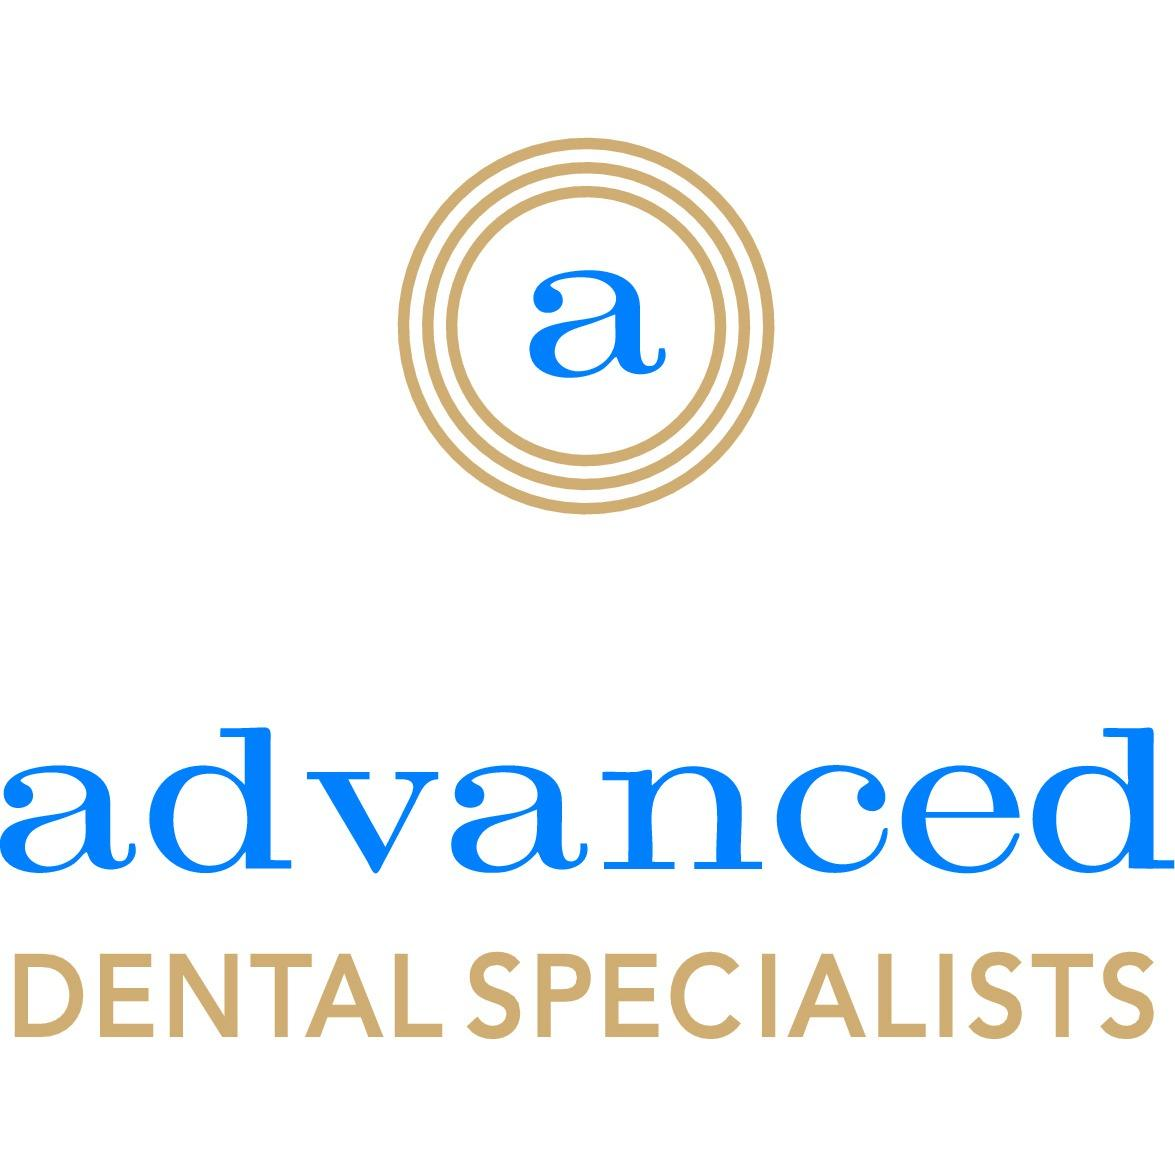 Fakhravar, Behnam, DMD - Advanced Dental Specialists